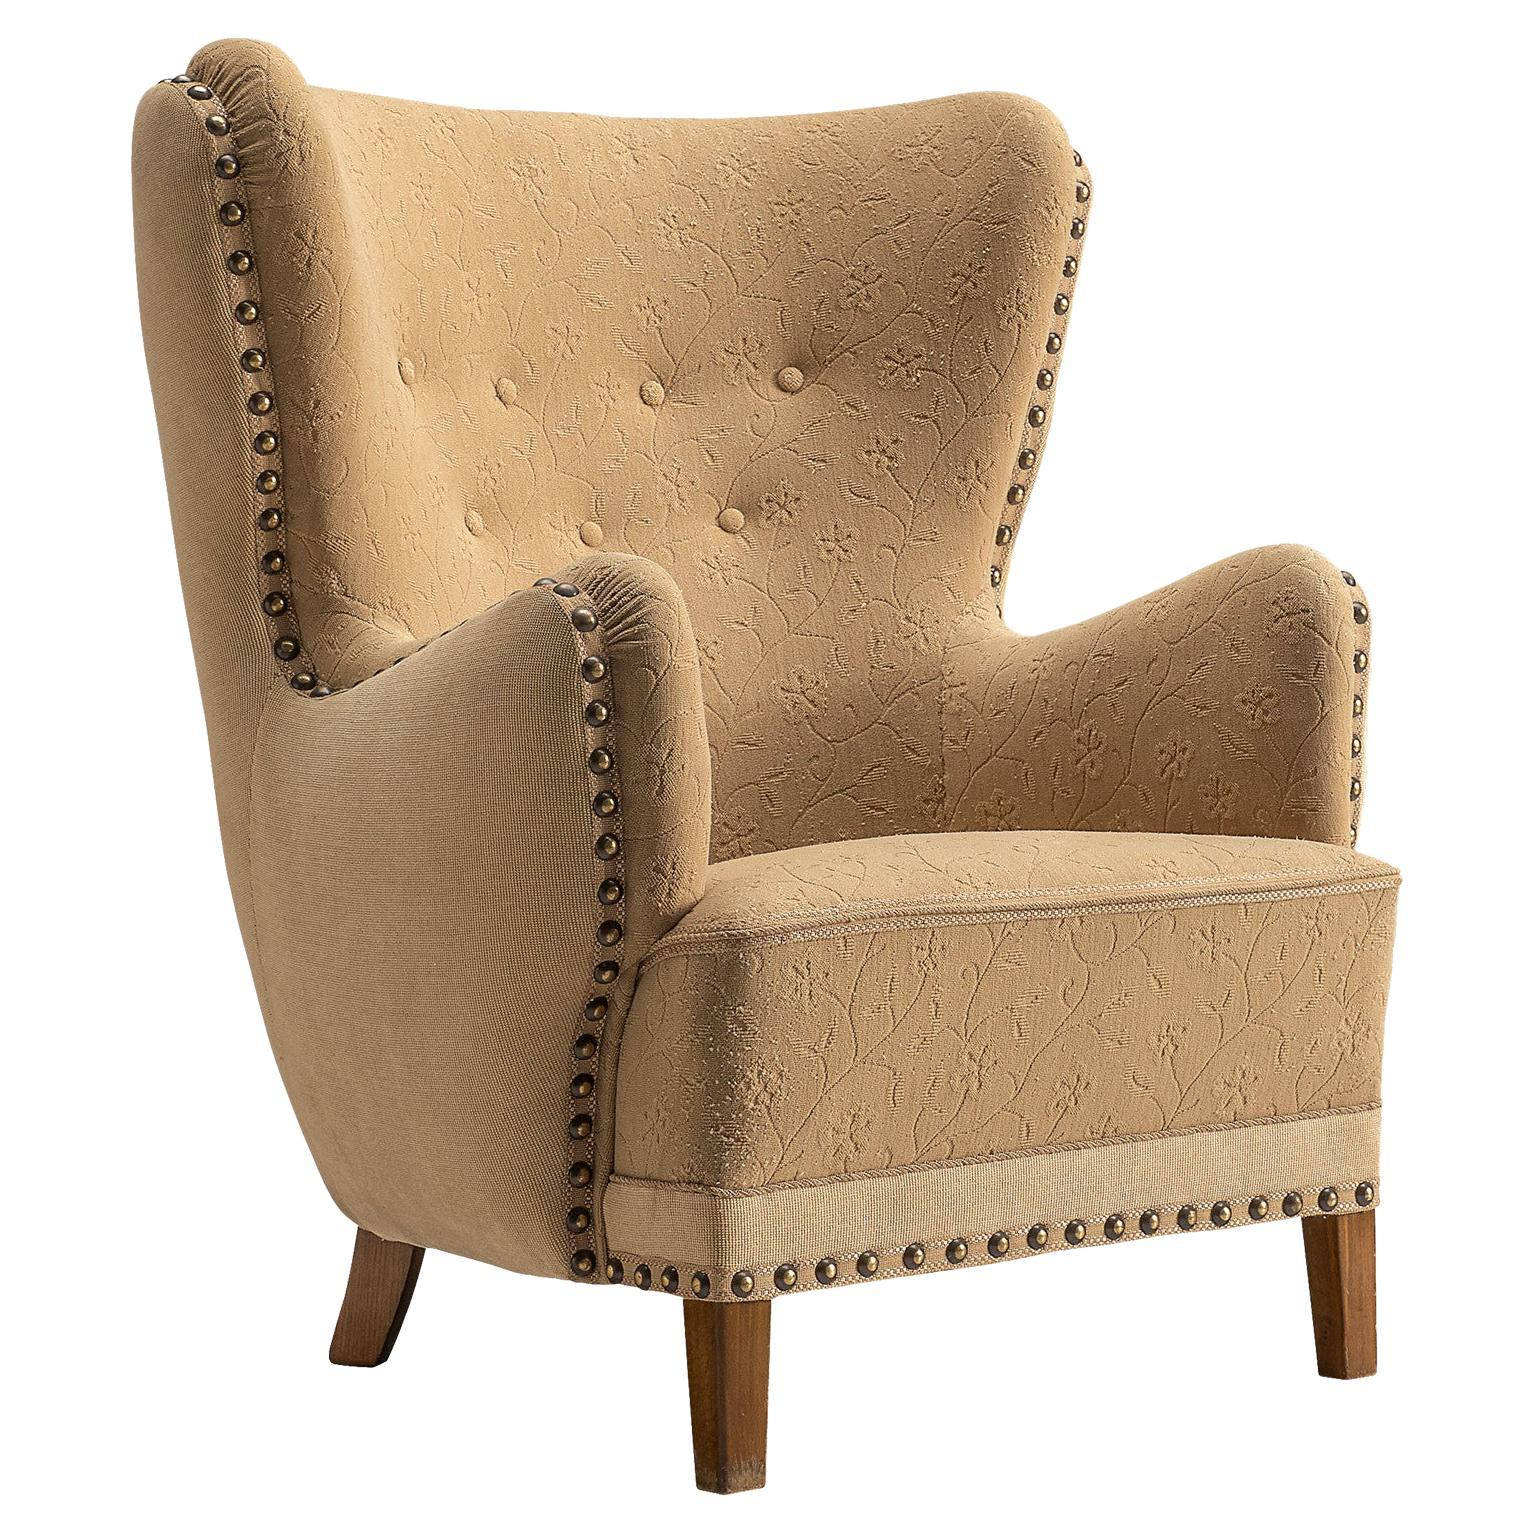 Danish Lounge Chair in Beige Upholstery